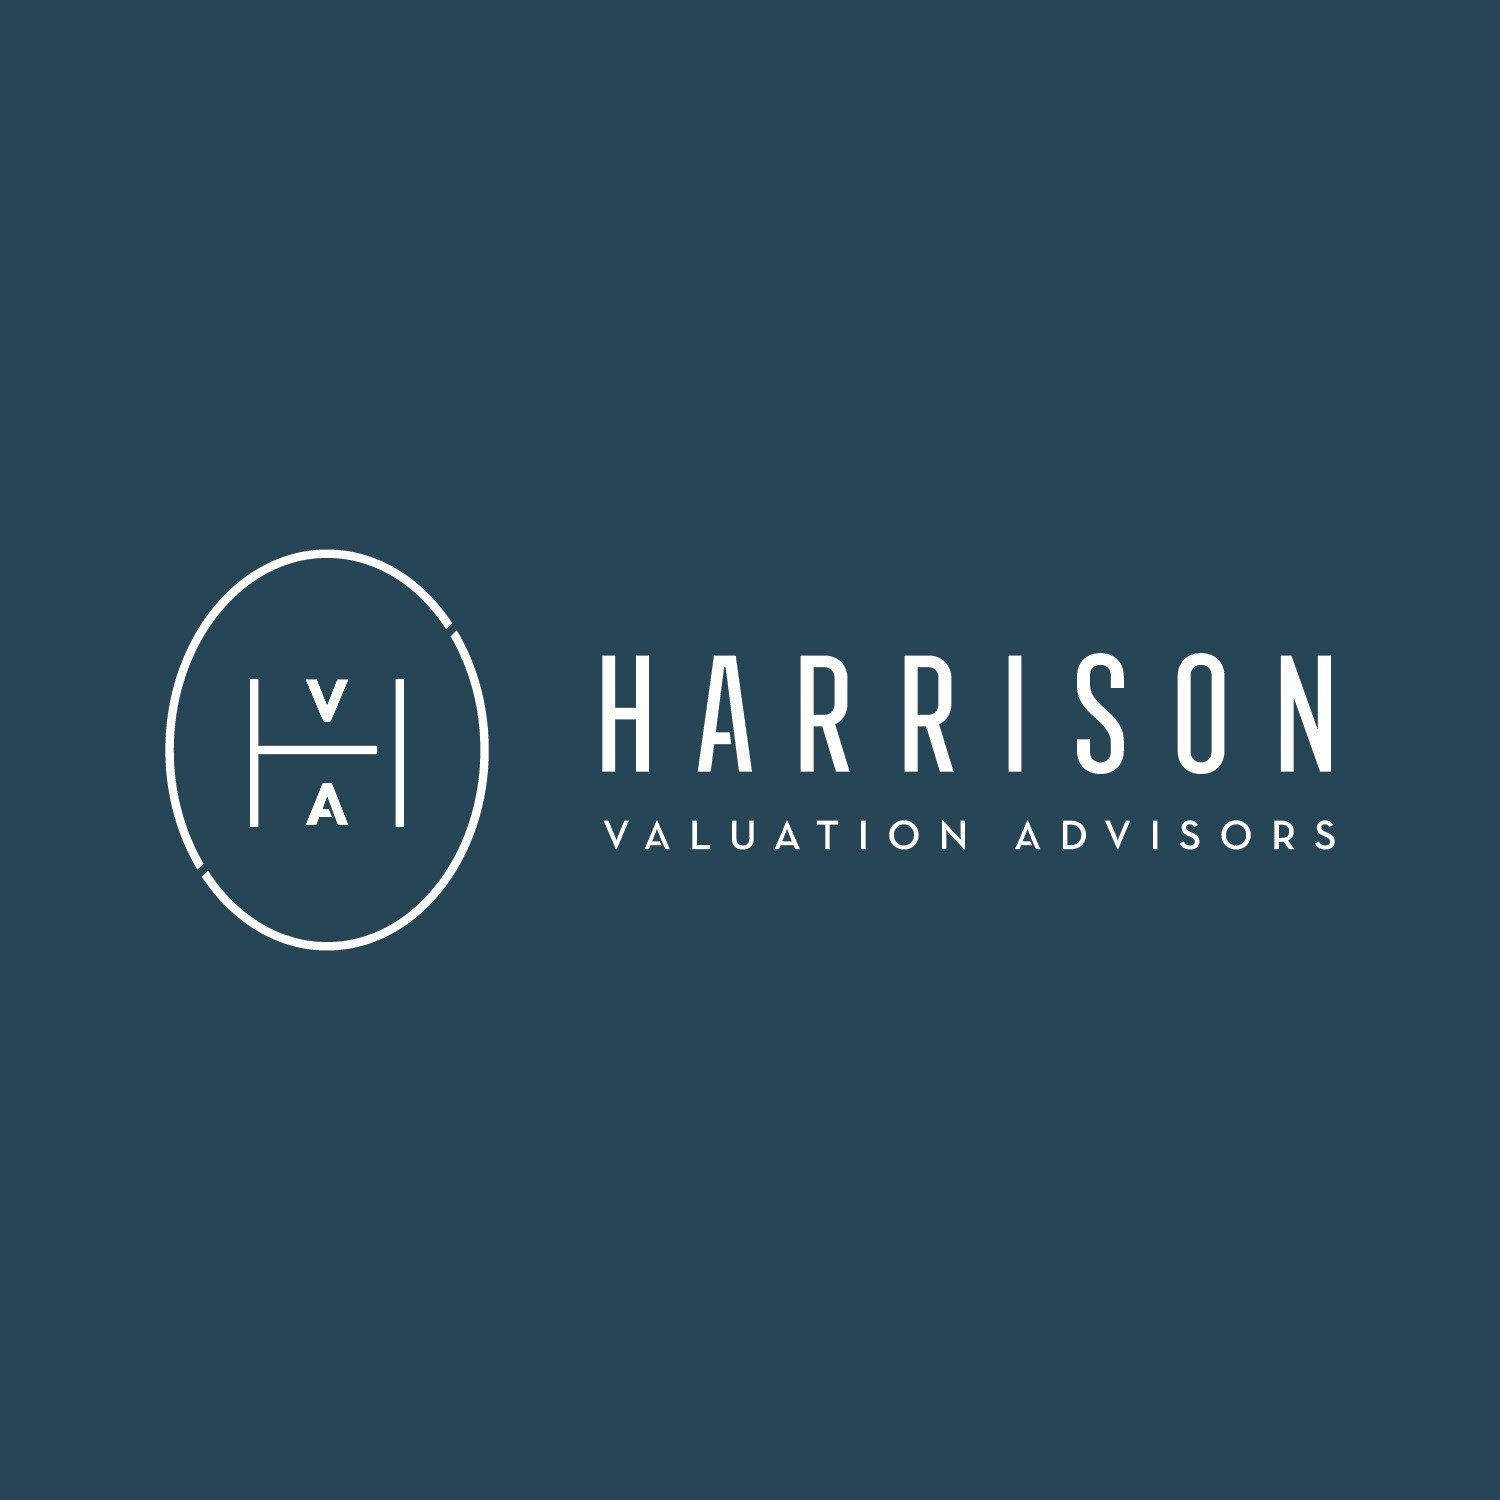 Harrison Valuation Advisors